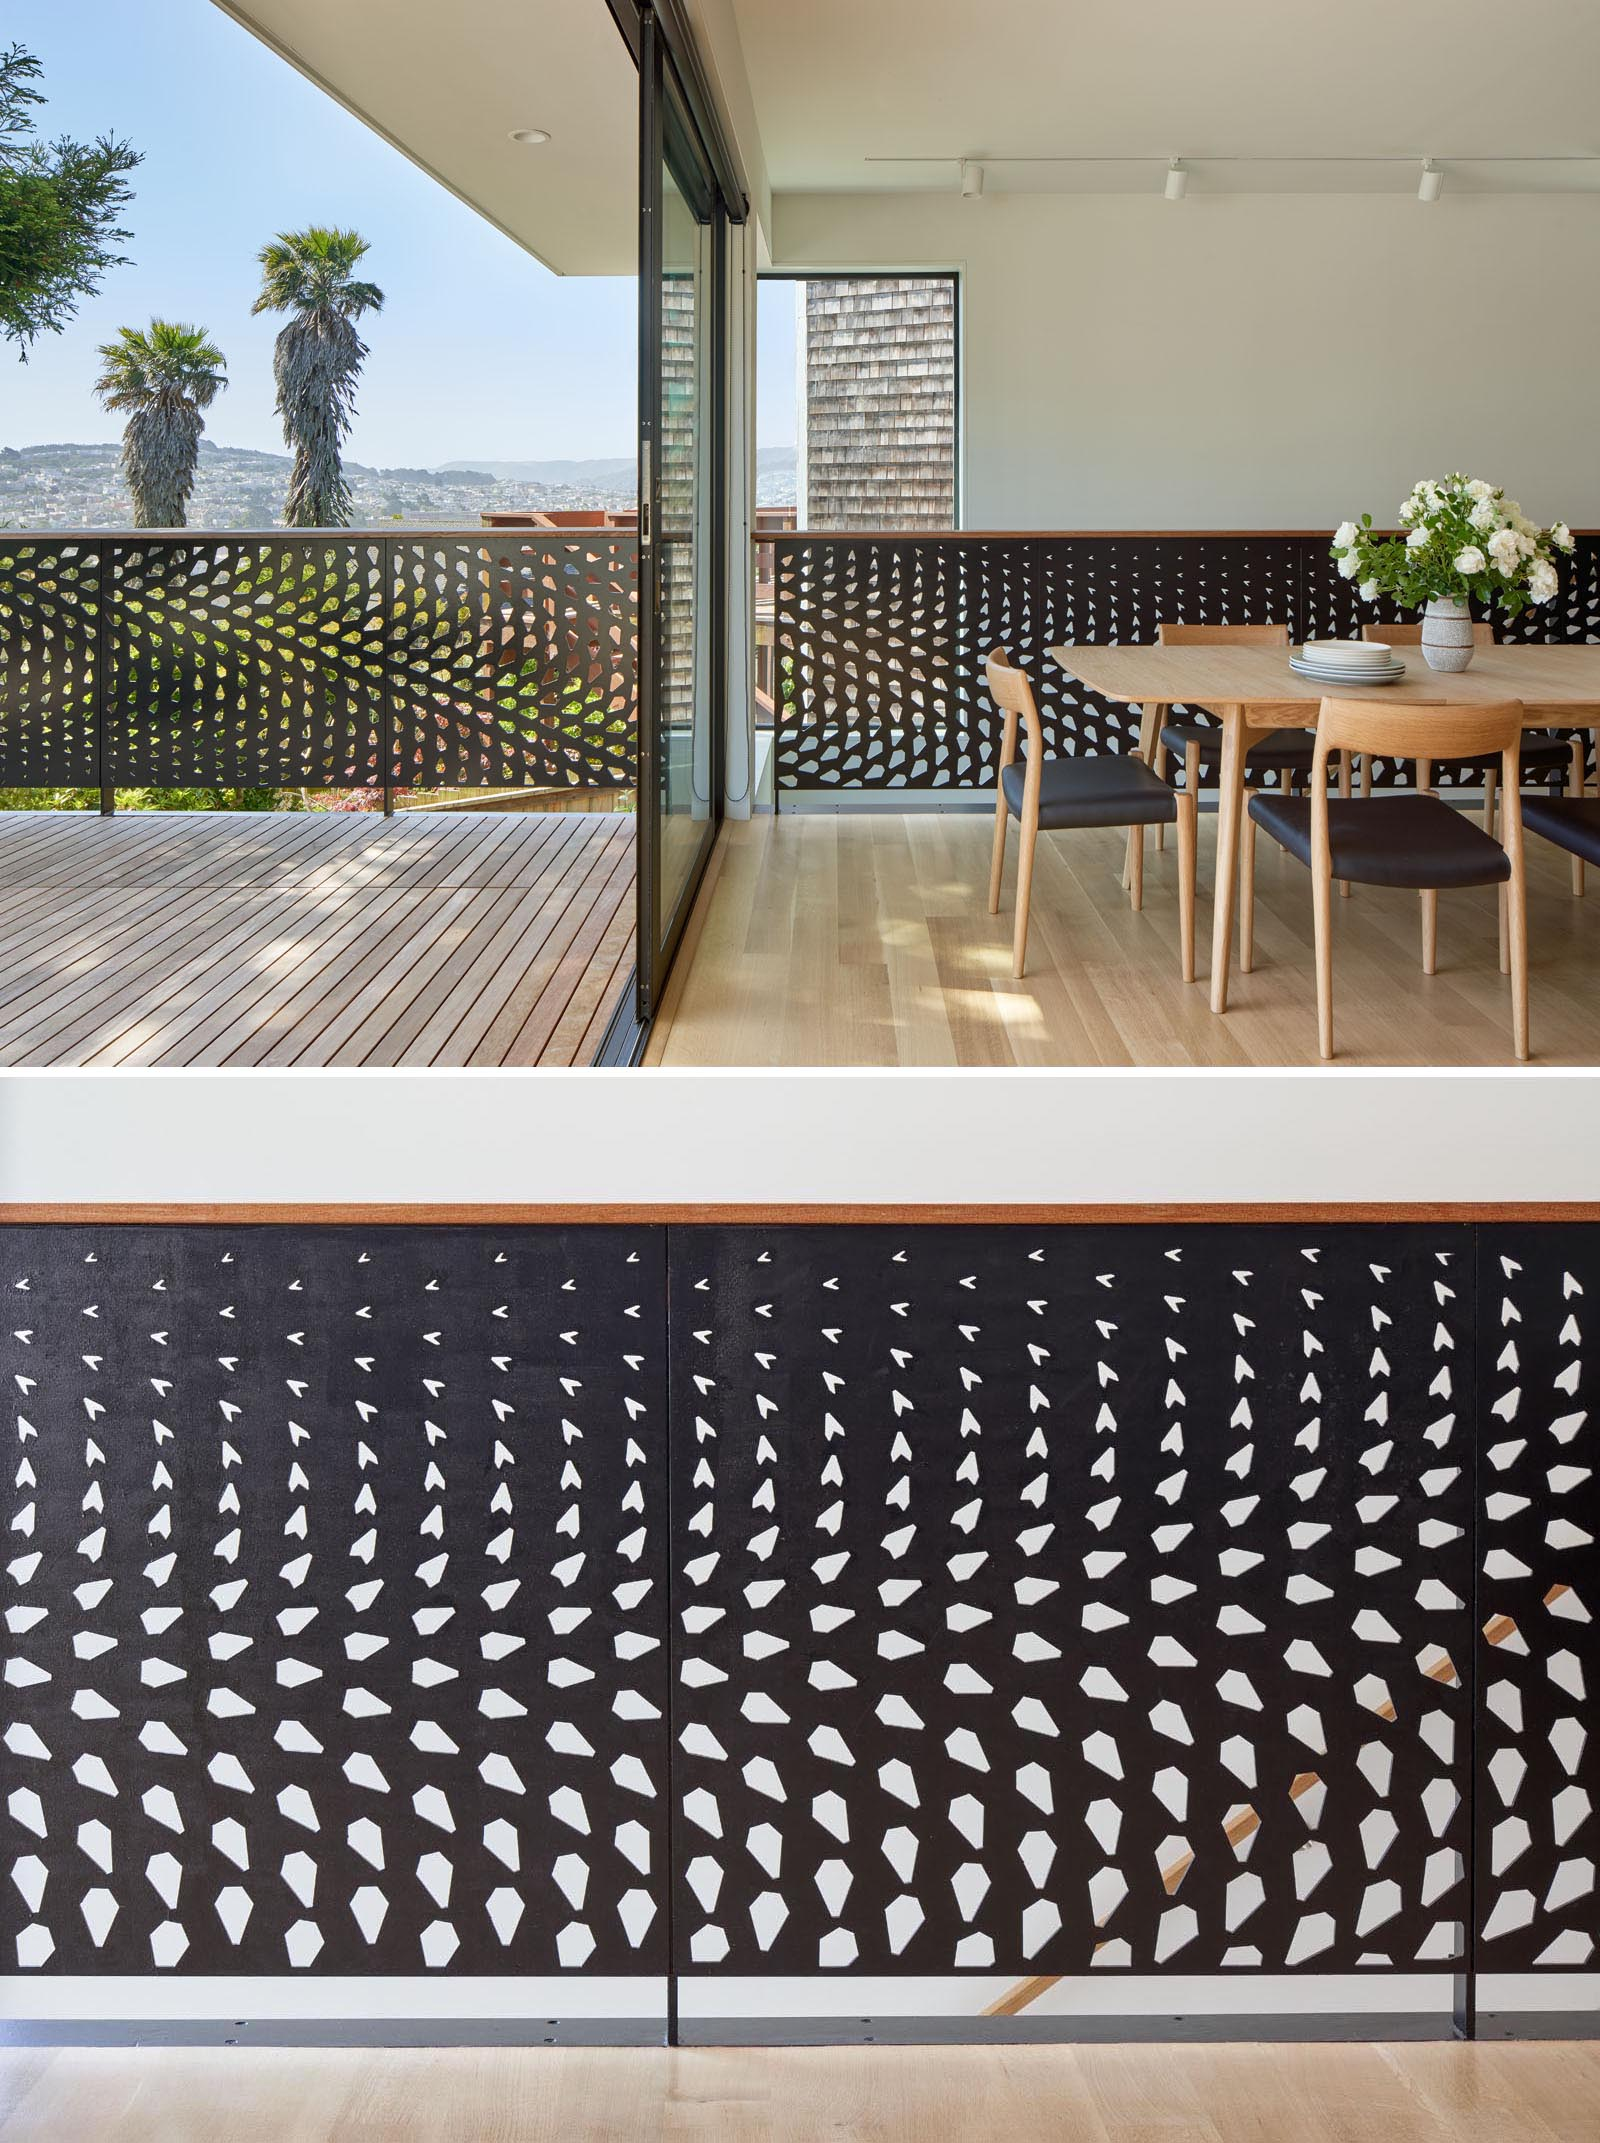 The dining room and living room of this remodeled home both open to a deck with seating and views. The metal guardrail design, which flows from the interior to the exterior is inspired by the huge conifer tree outside.